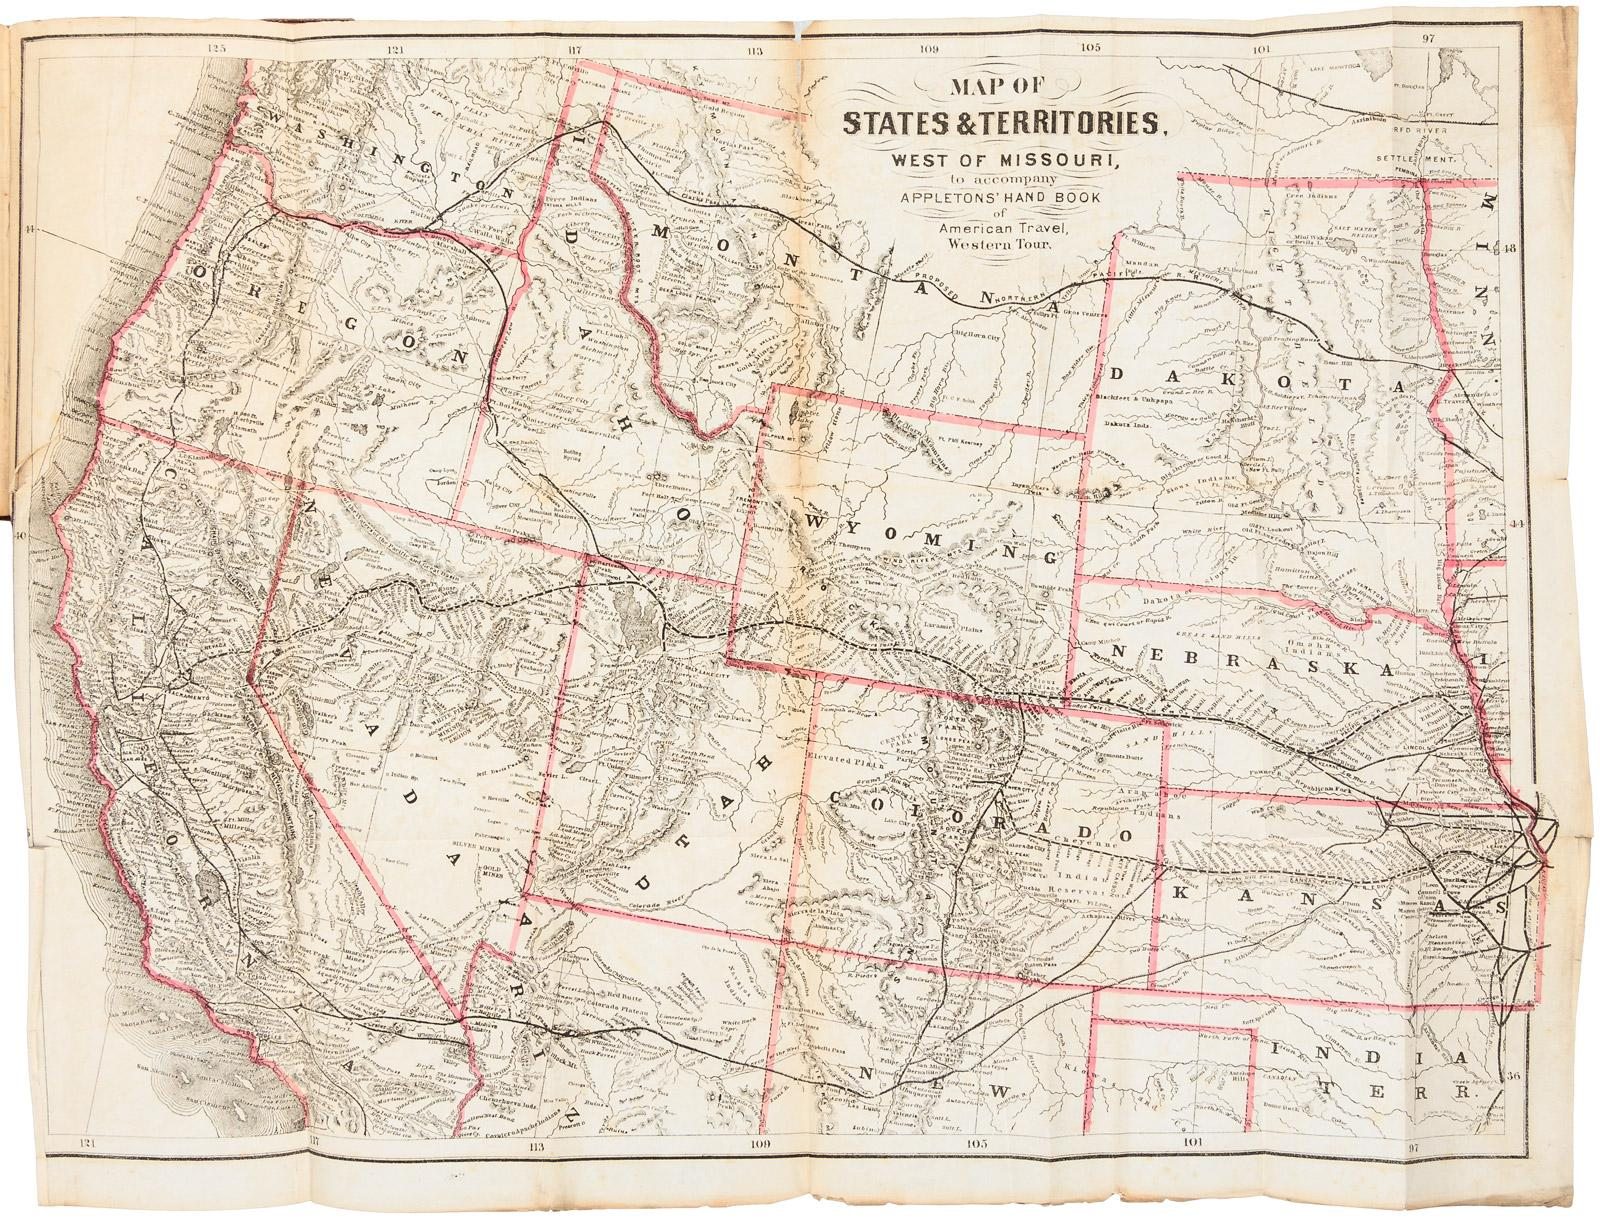 Far West Missouri Map.Appletons Hand Book Of American Travel Western Tour Embracing